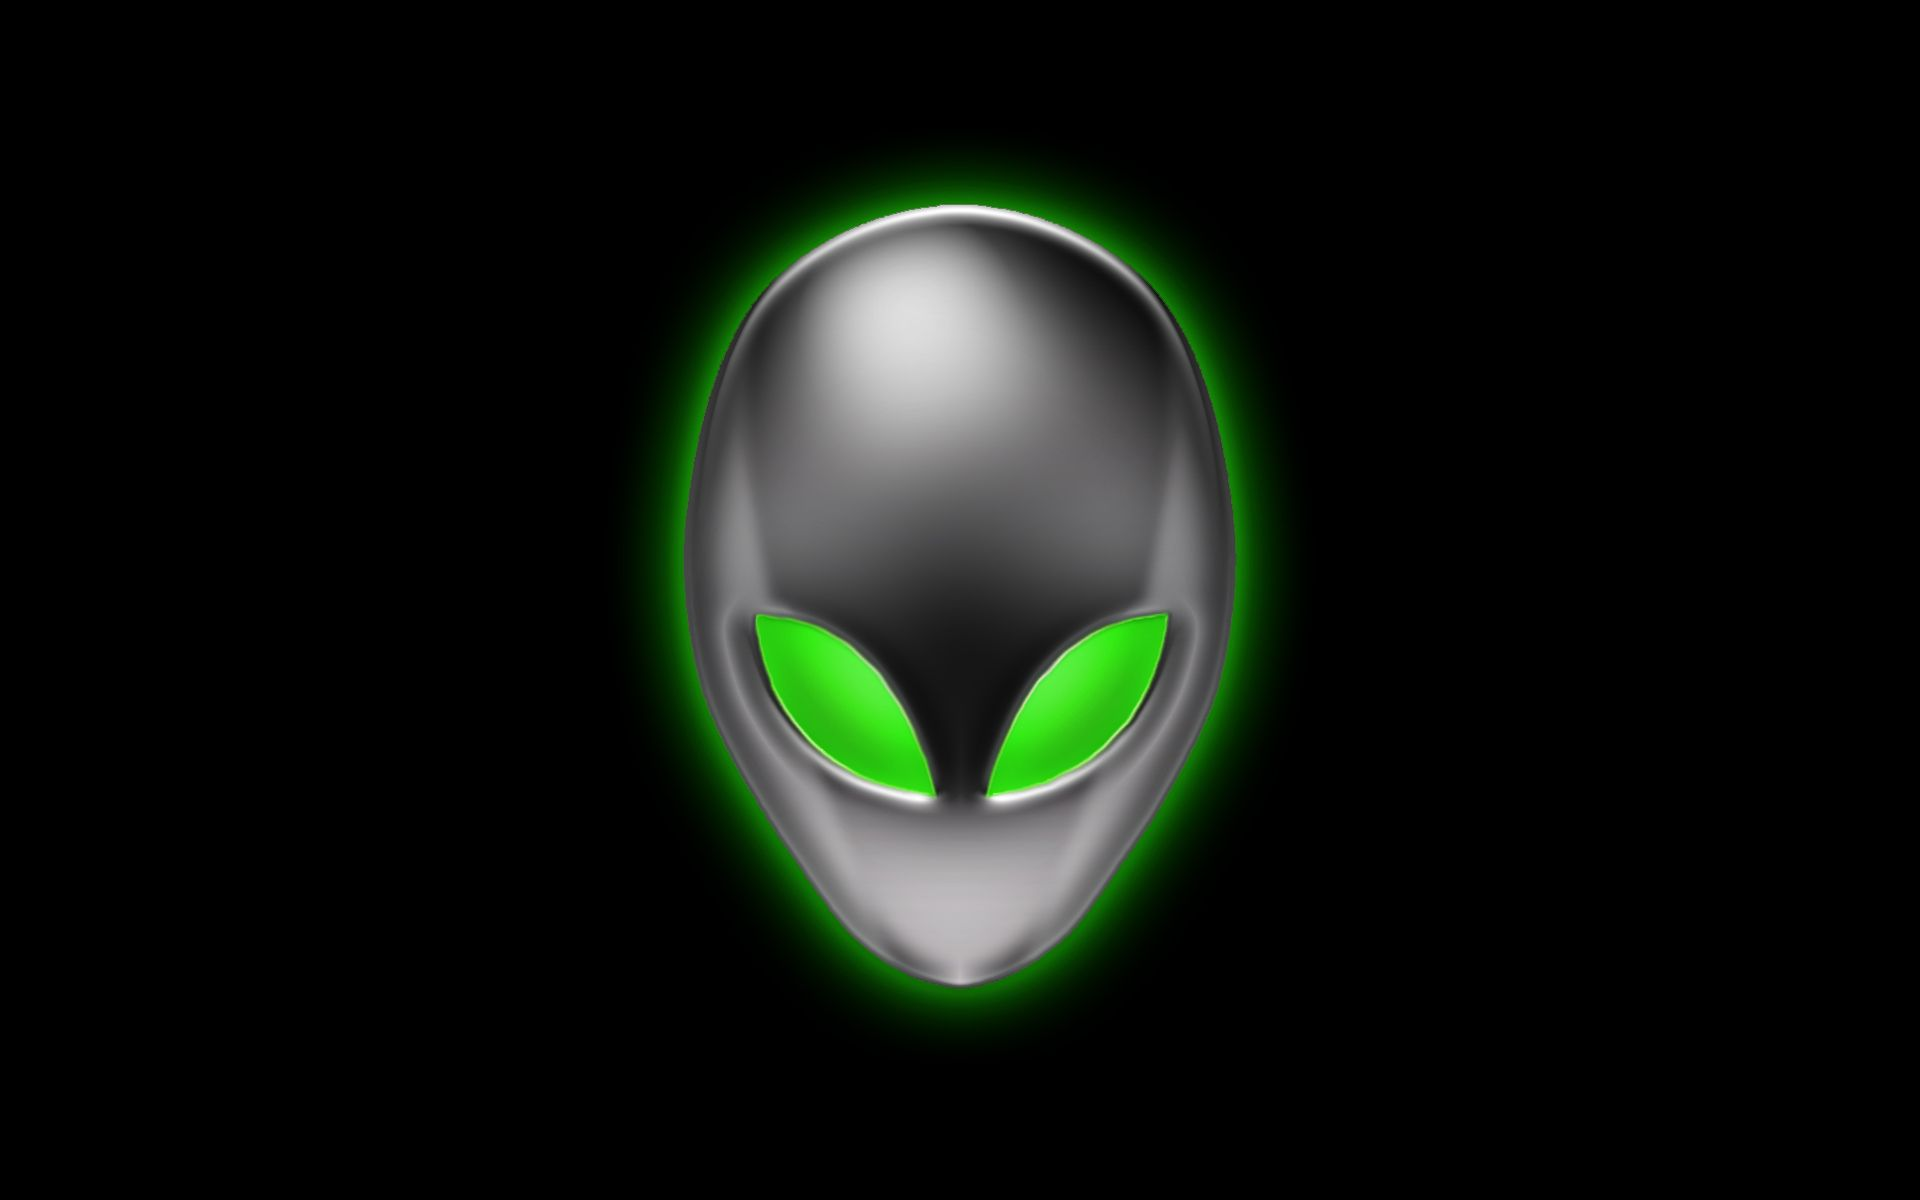 Green Alienware Wallpapers 1920x1200